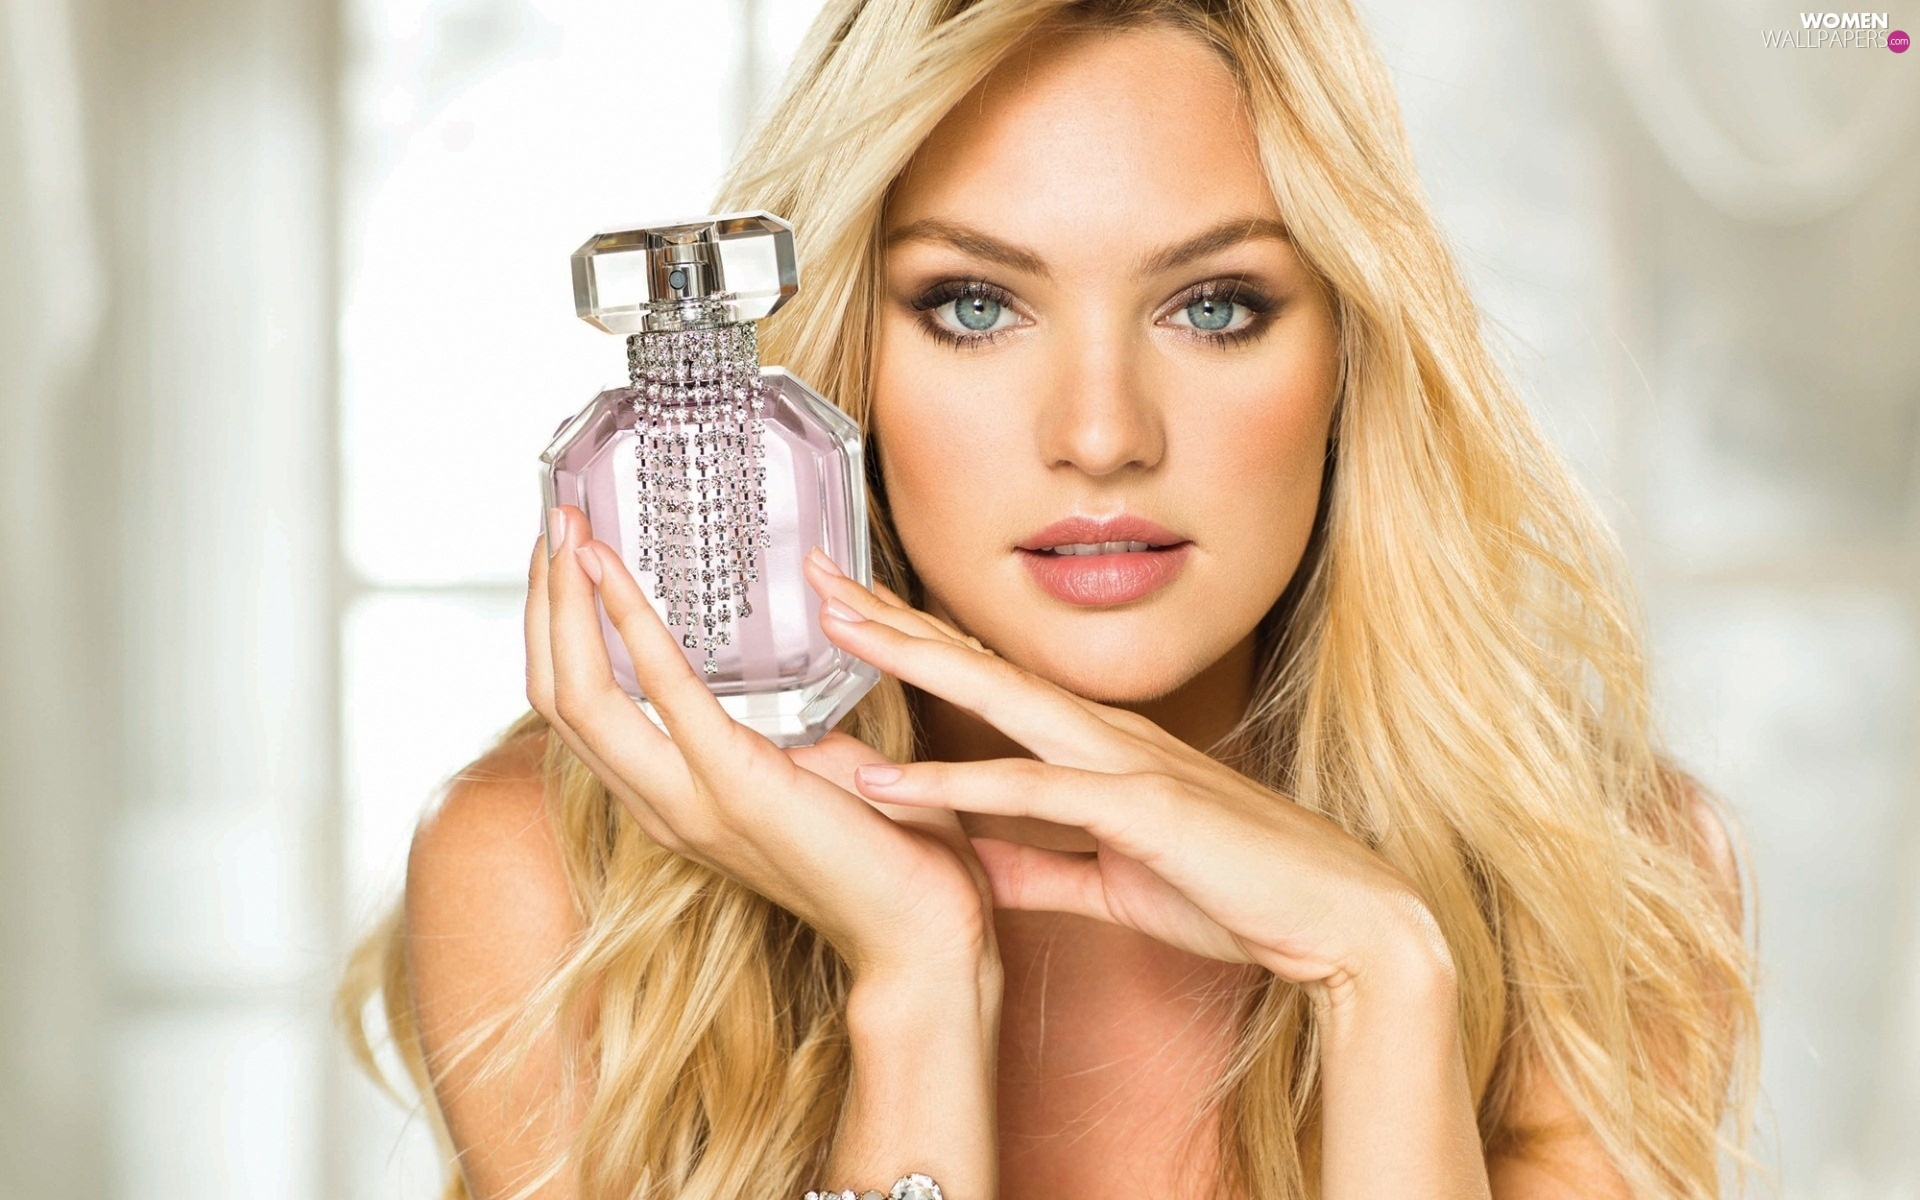 Blonde, perfume, Candice Swanepoel, make-up